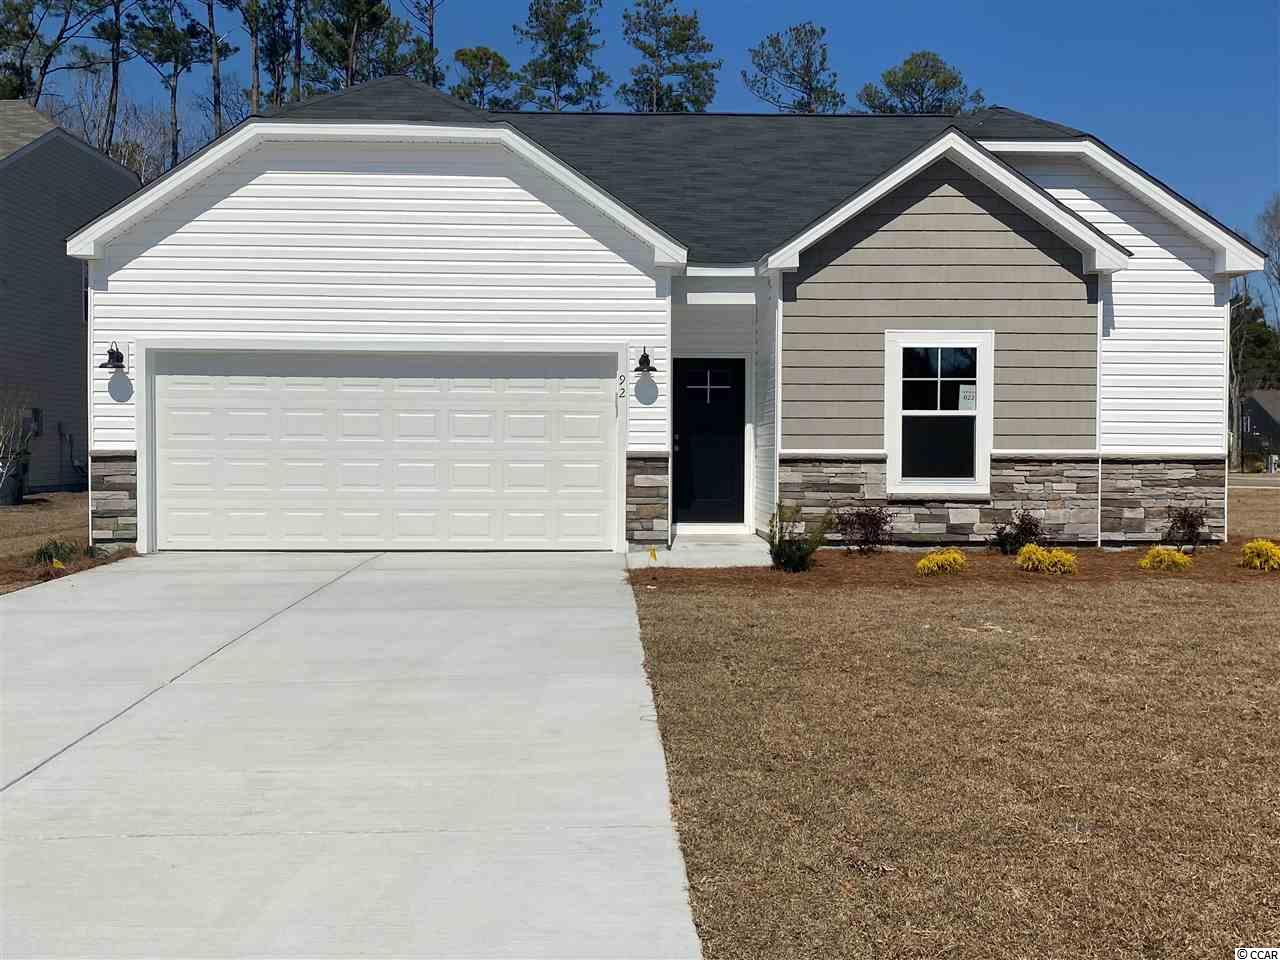 """This is the Patriot plan in the sought after community of Pawleys Cove, options and upgrades will vary as built. Pawleys Island is a famous seaside historic town known for it's carefree and laid back style with unspoiled beaches, eclectic dining, and challenging world-class golf gourses galore!  There's also great amenities close by to enjoy like bike trails, community parks, natural gardens, and local creeks for crabbing and fishing.  Pawleys Cove will be a great place to make your memories happen.  This is the """"Patriot"""" plan under construction and to be completed around Jan/Feb 2021. It features an open concept family, dining and kitchen area and the laundry room is just off of kitchen with a linen closet.  Great storage in this home with all bedrooms having walk-in closets!  It will feature gorgeous vinyl plank flooring throughout main and wet areas and kitchen will feature painted maple cabinets, granite, stainless upgraded appliances and a large entertaining island.  The Owner's bath will feature a large tile shower and double vanities with a linen closet.  Pictures in this listing are of a similar home with options and upgrades and not the actual home.  All information is deemed reliable but not guaranteed.  Buyer is responsible for verification."""